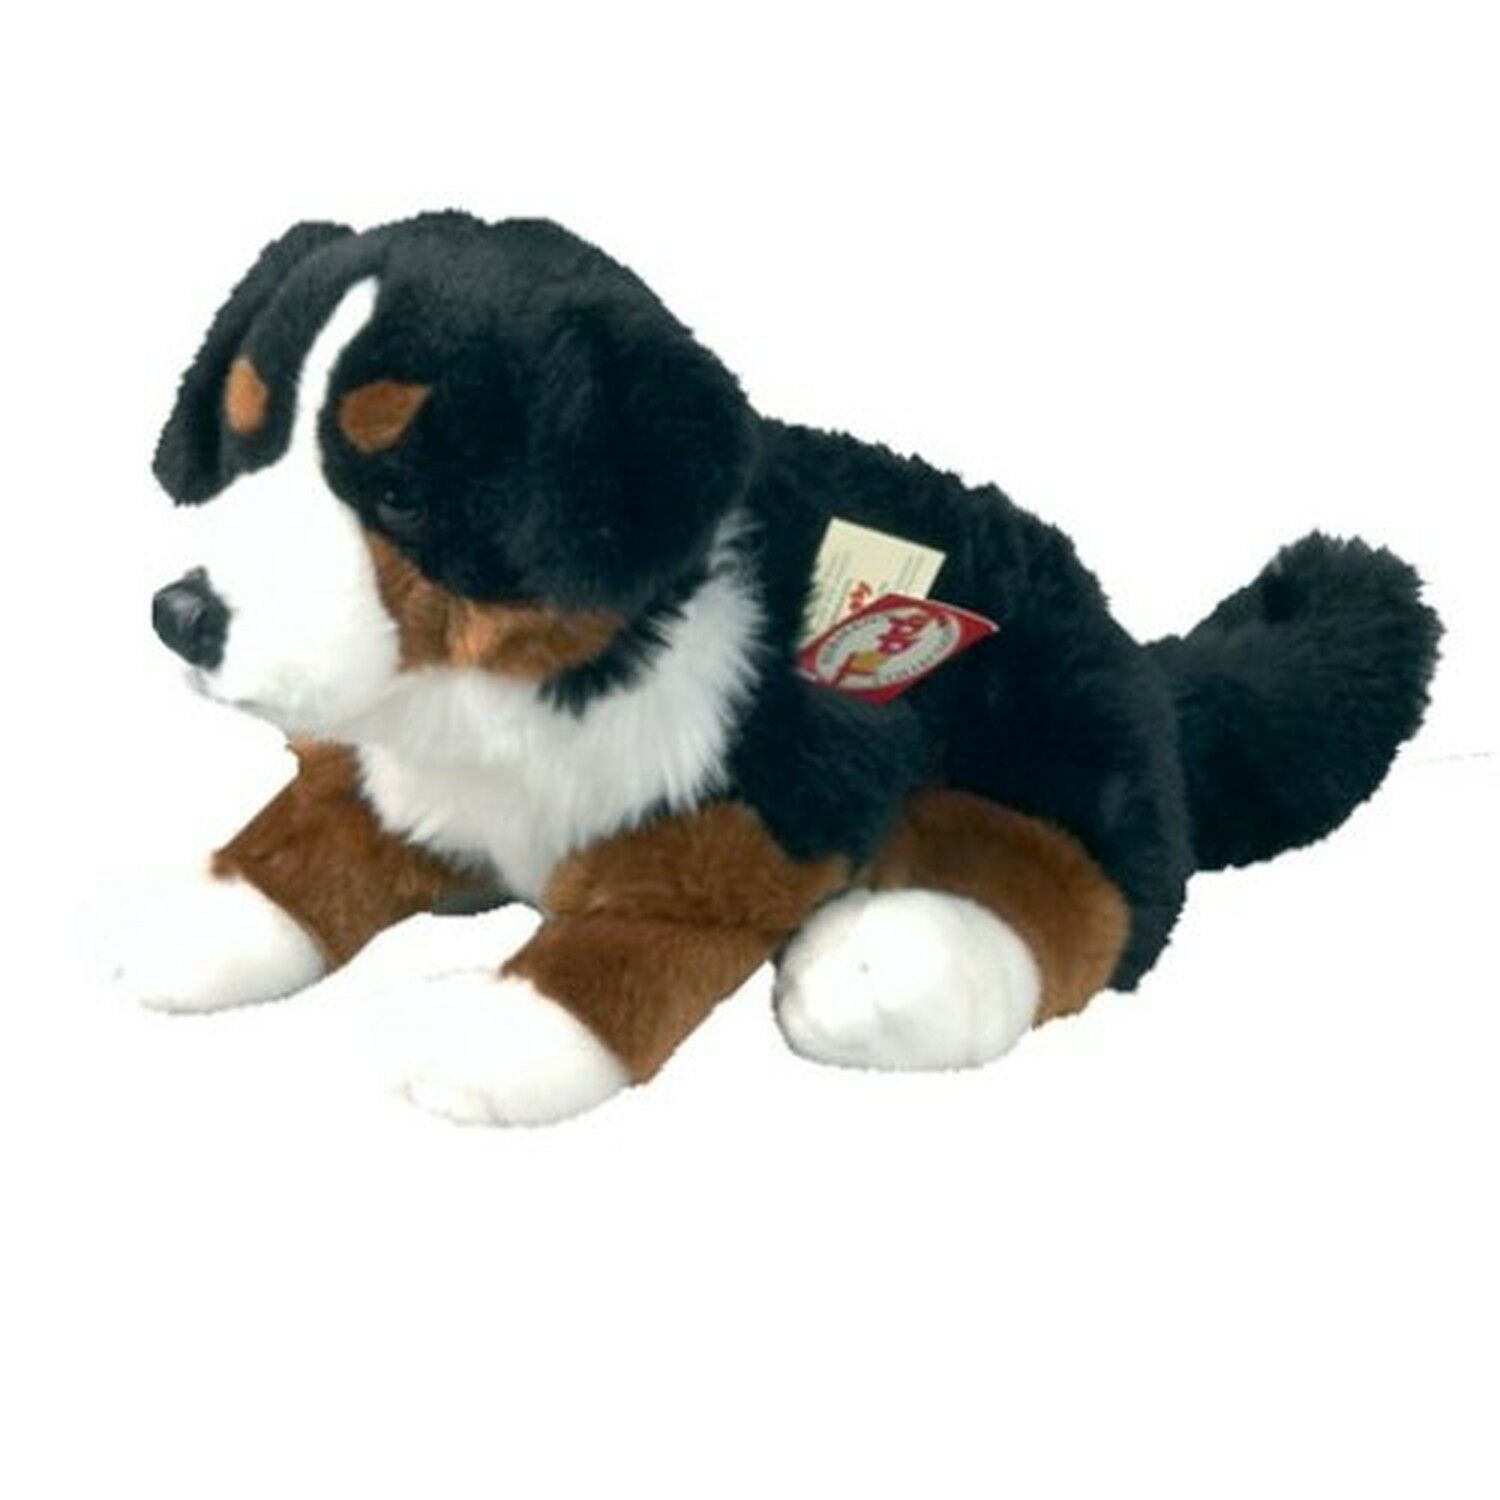 Hermann teddy collection 928713 29 cm berner mountain dog sitzung stofftiers